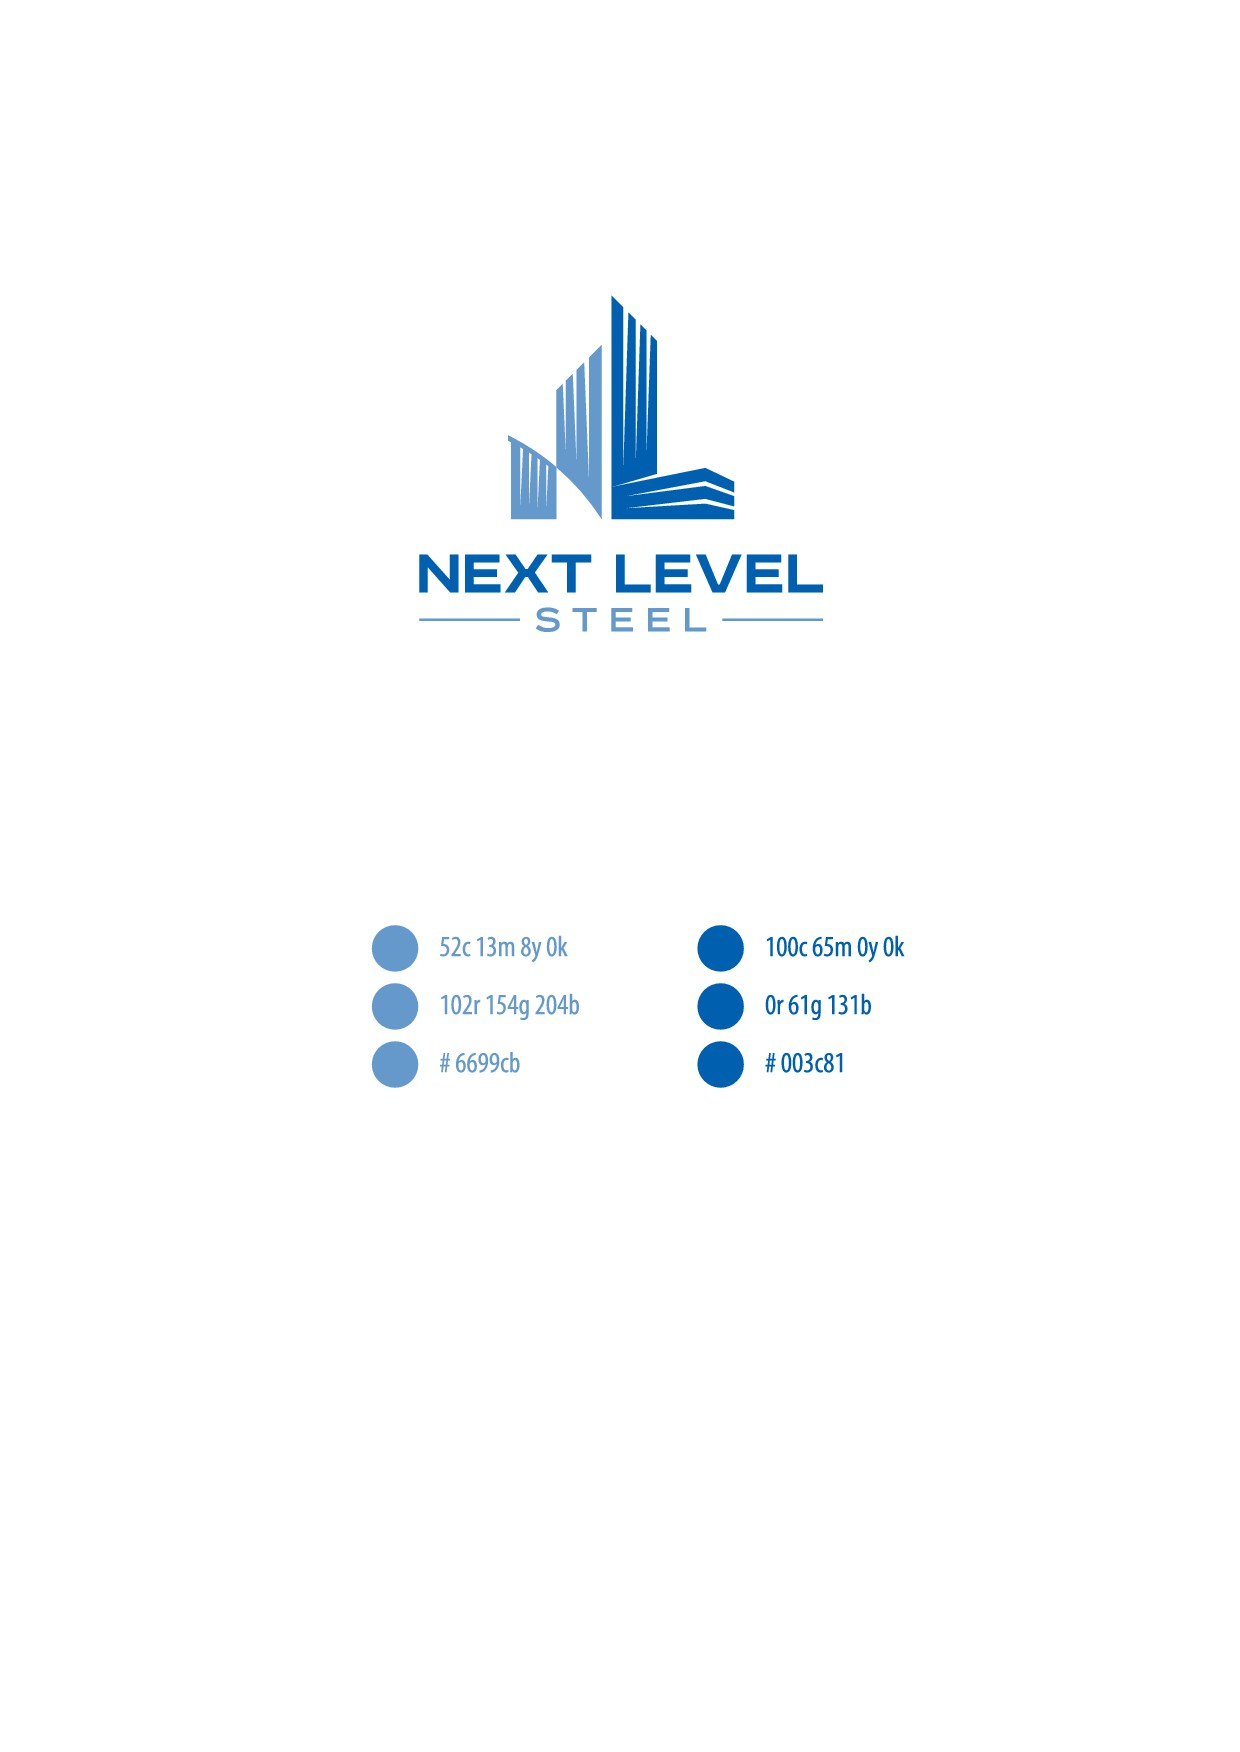 Design a logo for a POWERFUL new structural steel company